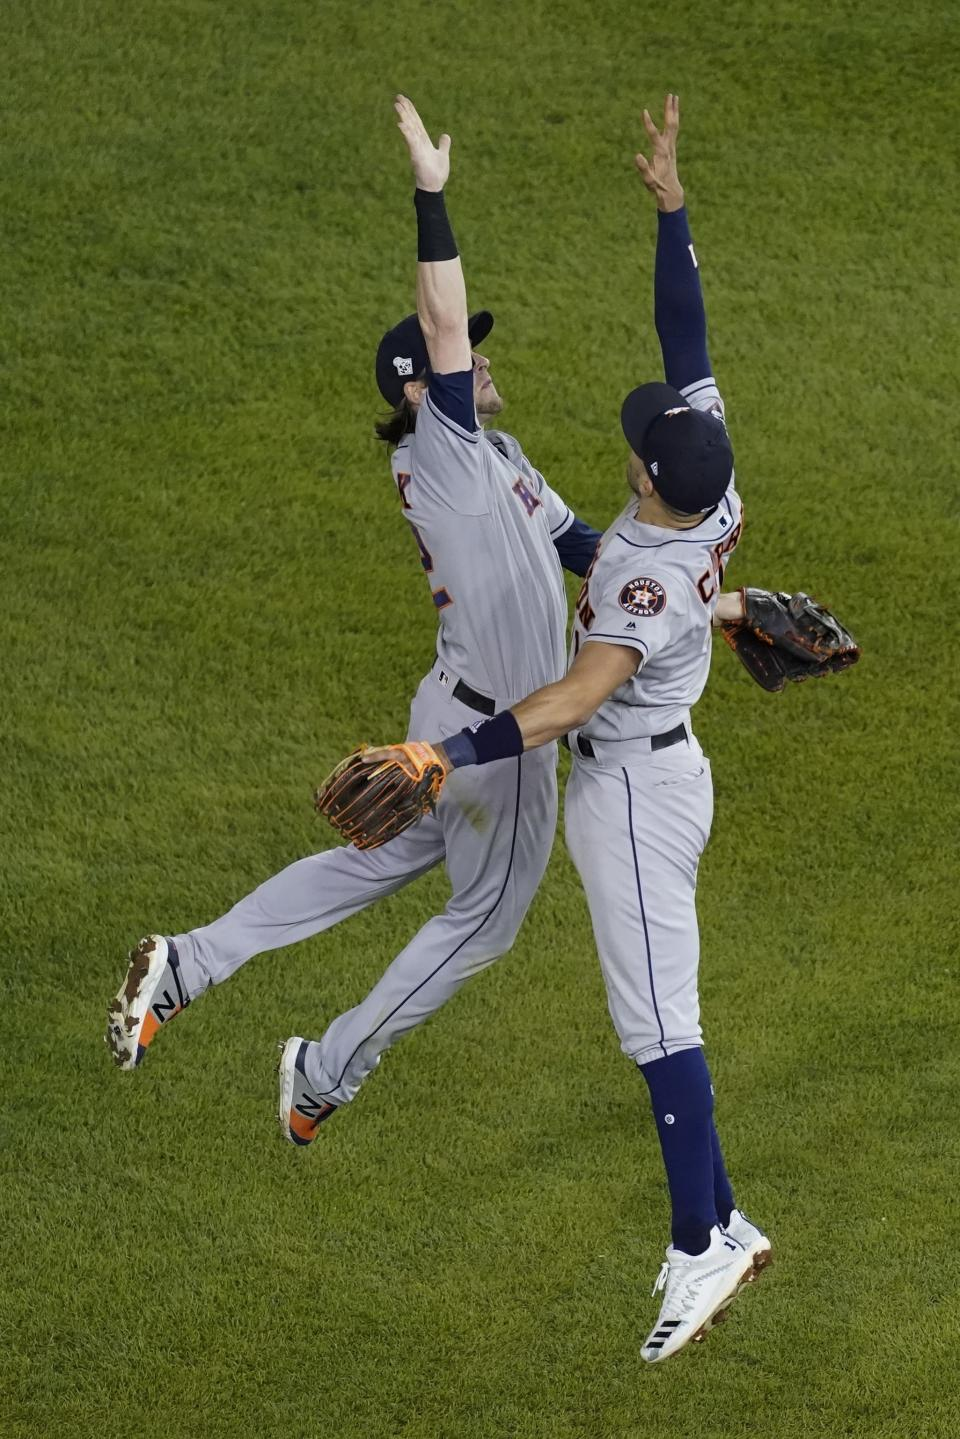 Houston Astros' Carlos Correa and Josh Reddick celebrate after Game 3 of the baseball World Series against the Washington Nationals Saturday, Oct. 26, 2019, in Washington. The Astros won 4-1. (AP Photo/Pablo Martinez Monsivais)